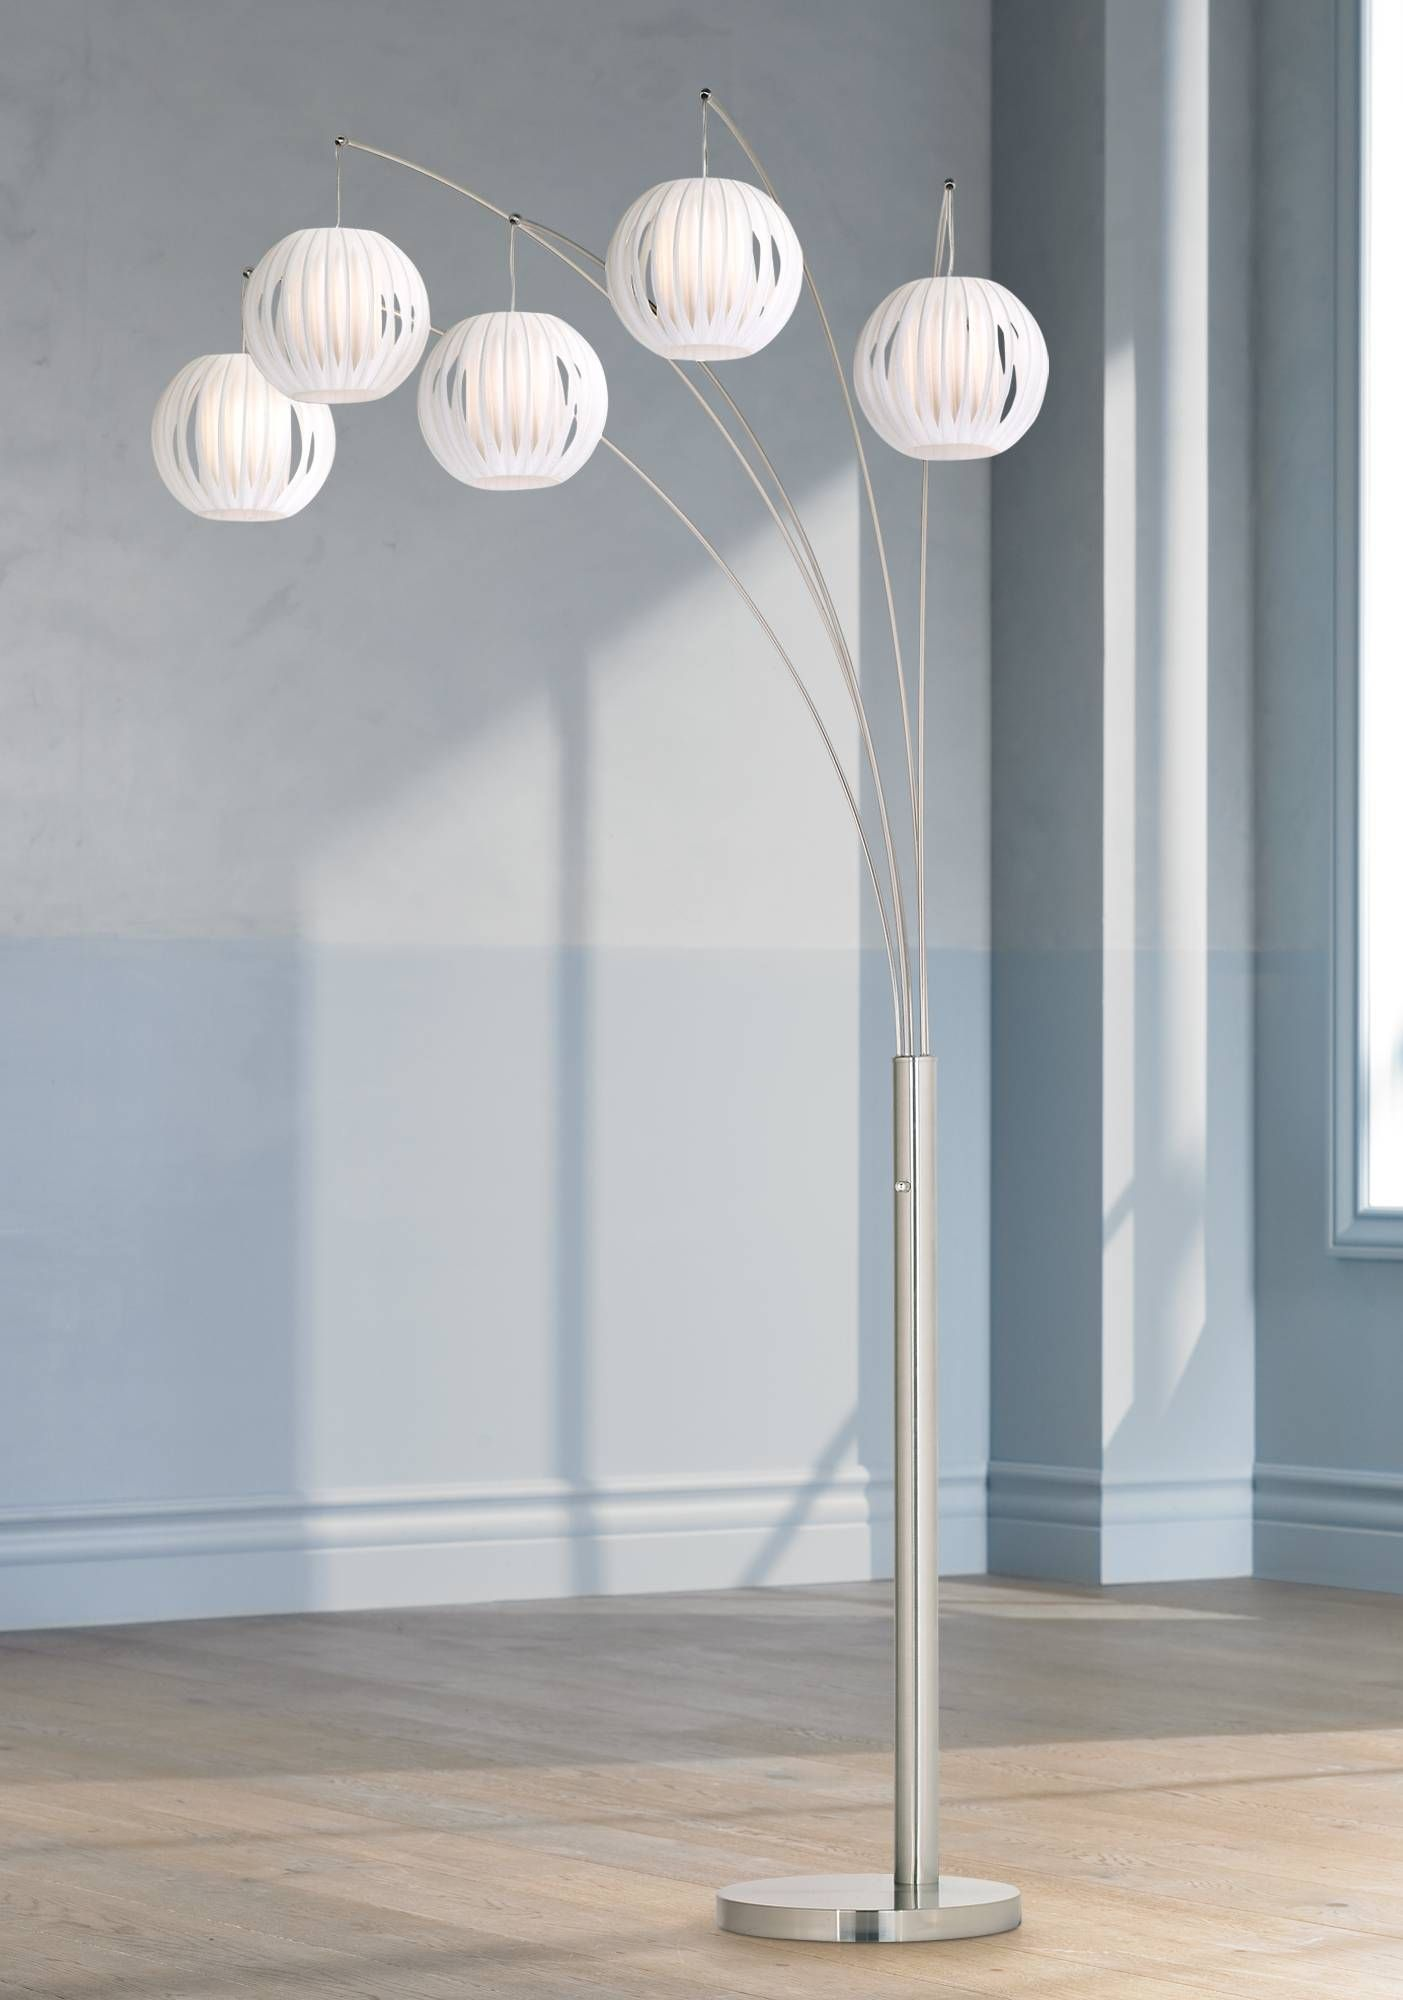 Lite source deion light hanging arc floor lamp arc floor lamps